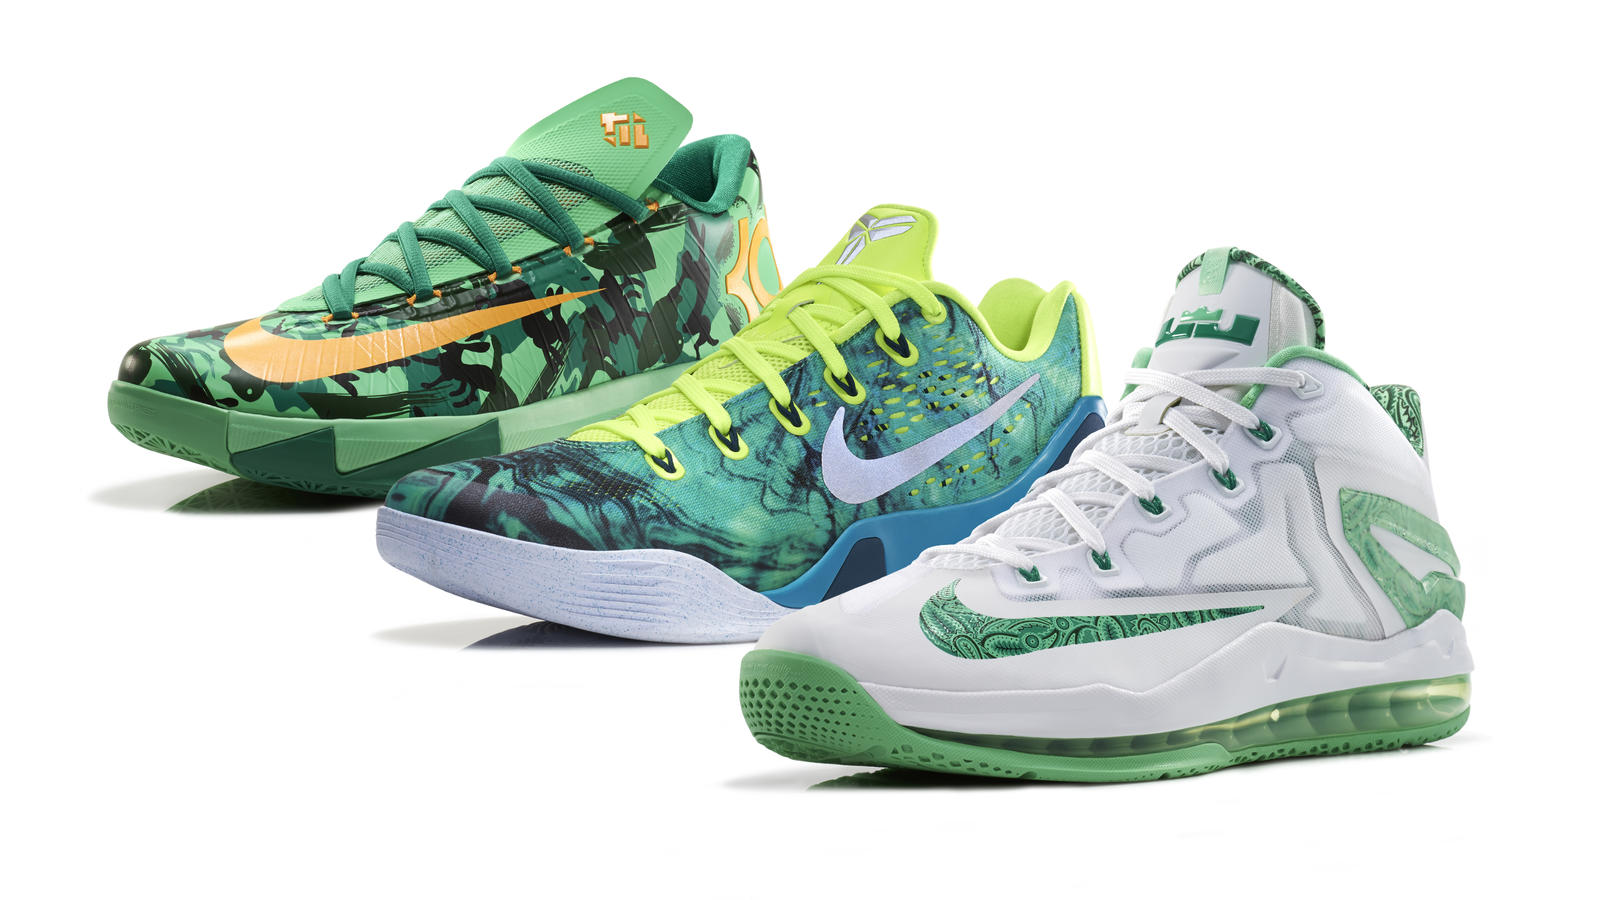 d01b1f273d1c kdvi easter 303 outsole 0019 fb. lebron 11 low easter 100 profile 0132 fb.  lebron 11 low easter 100 outsole 0052 fb. family easter 3qtr